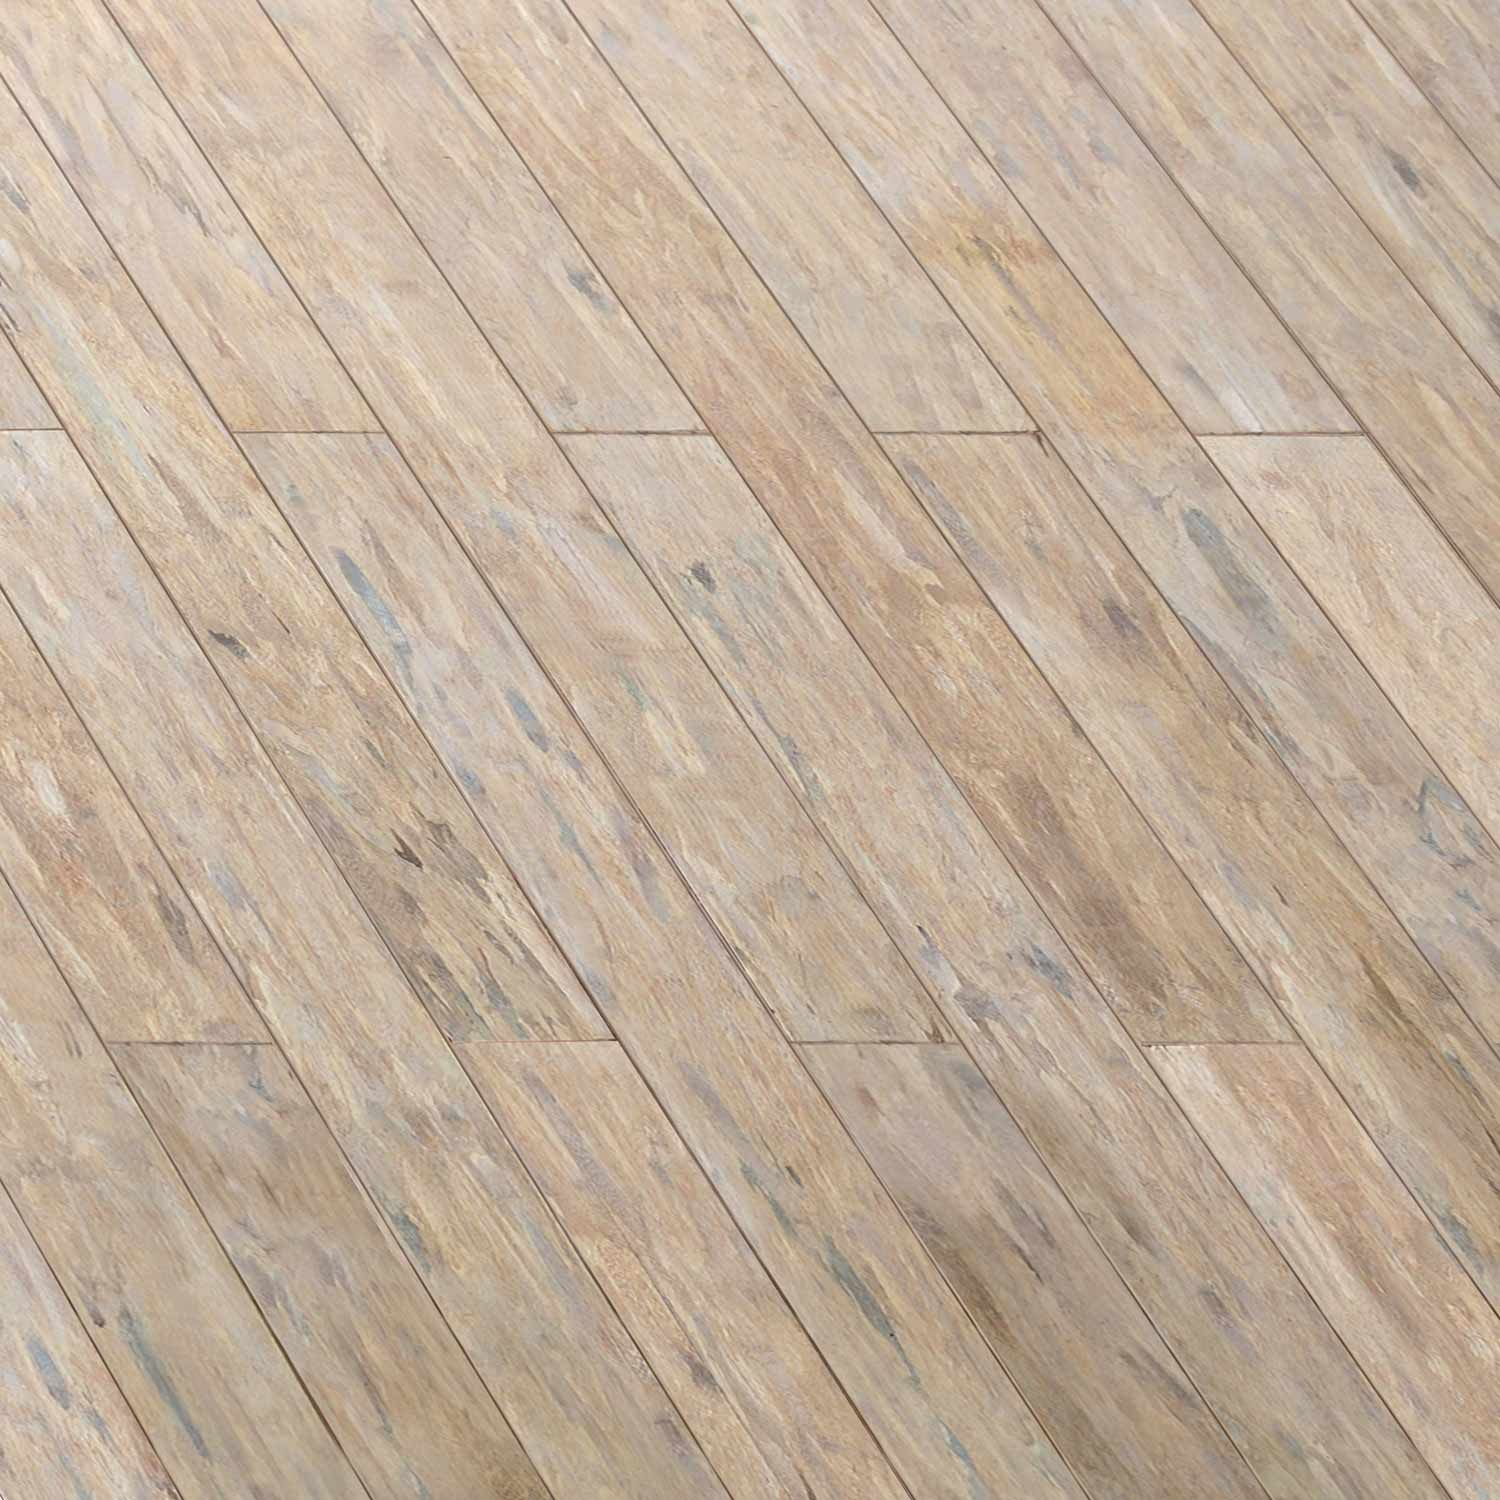 Bamboo flooring now made in the USA! No more formaldehyde